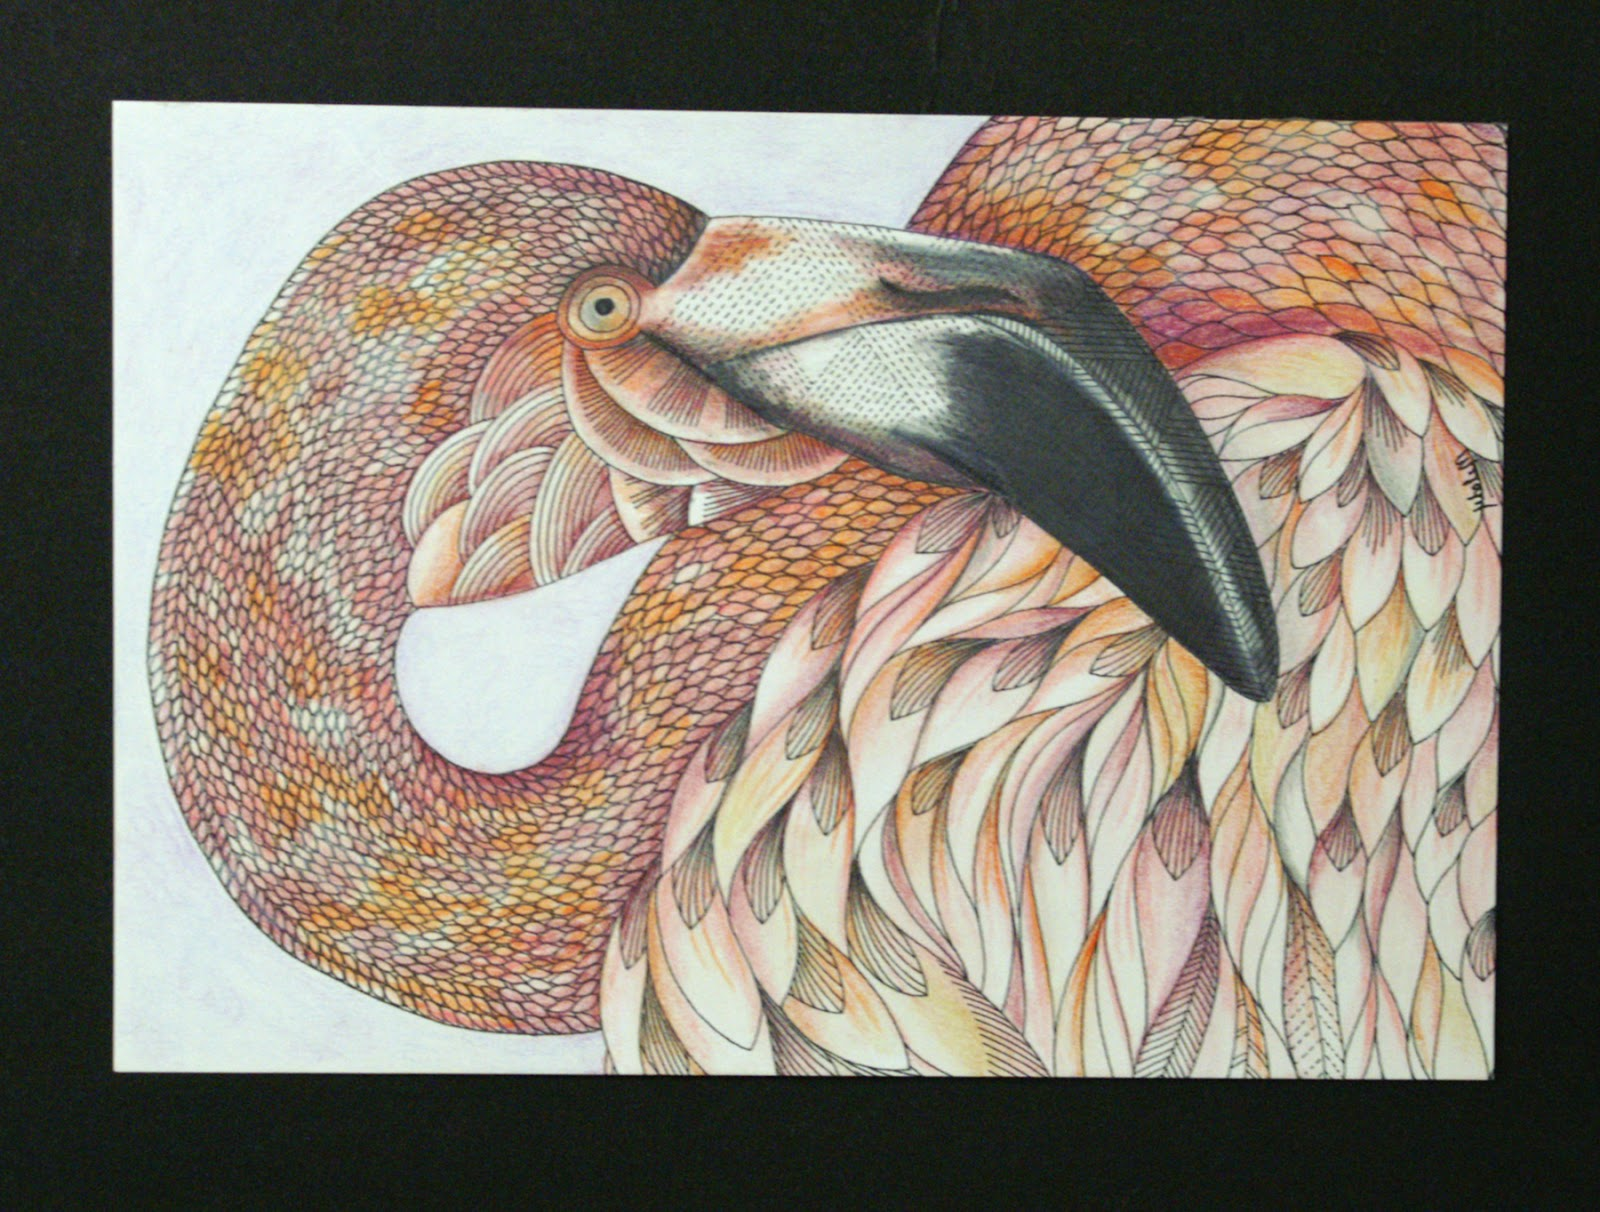 Coloring book animal kingdom - Melody Our Store Manager Created These Beautiful Colored Postcards From The Animal Kingdom Coloring Postcard Book The 30 Page Book Is By The Best Selling